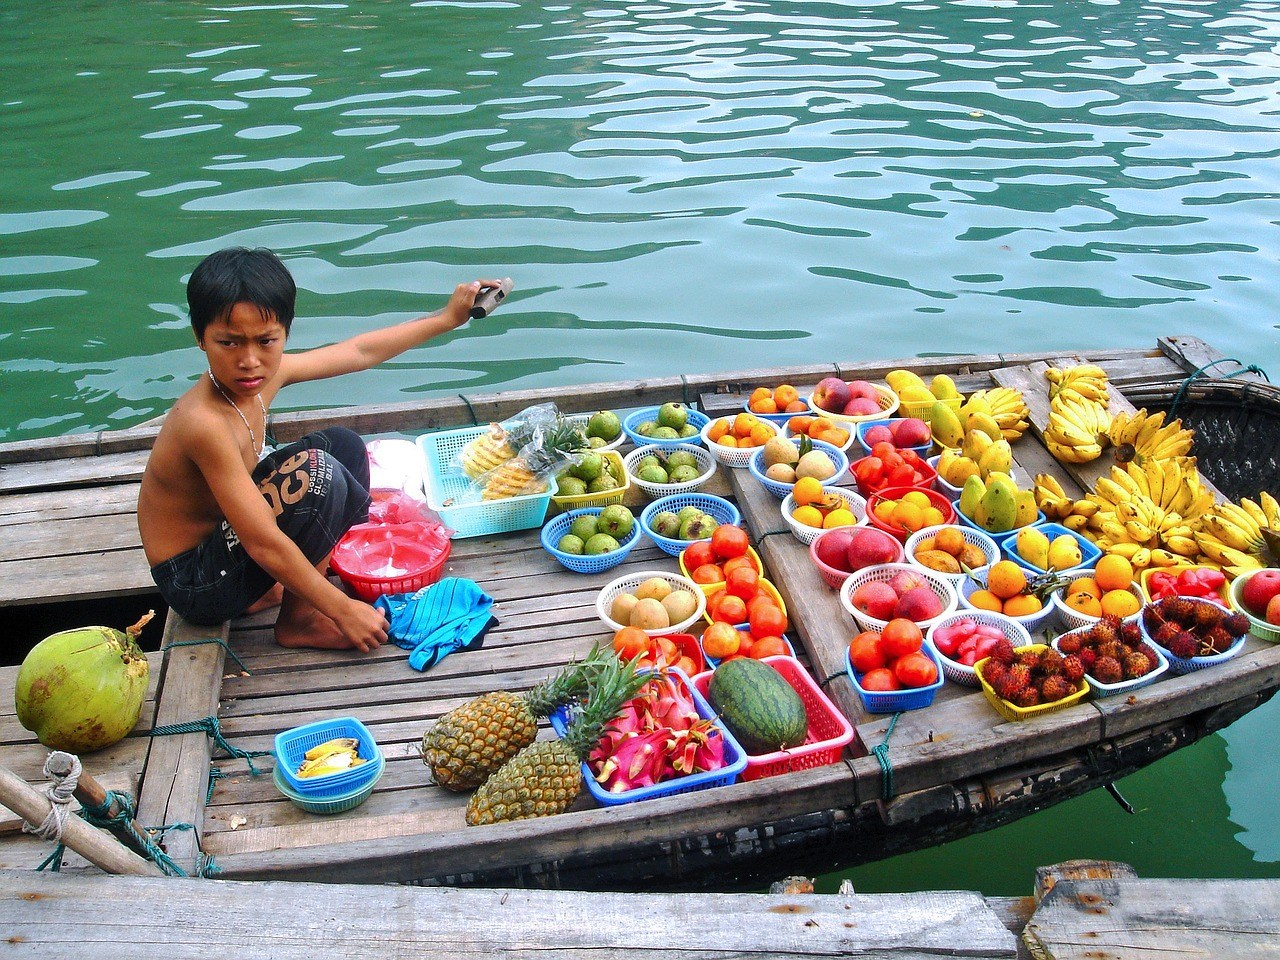 Boat vendor in Halong